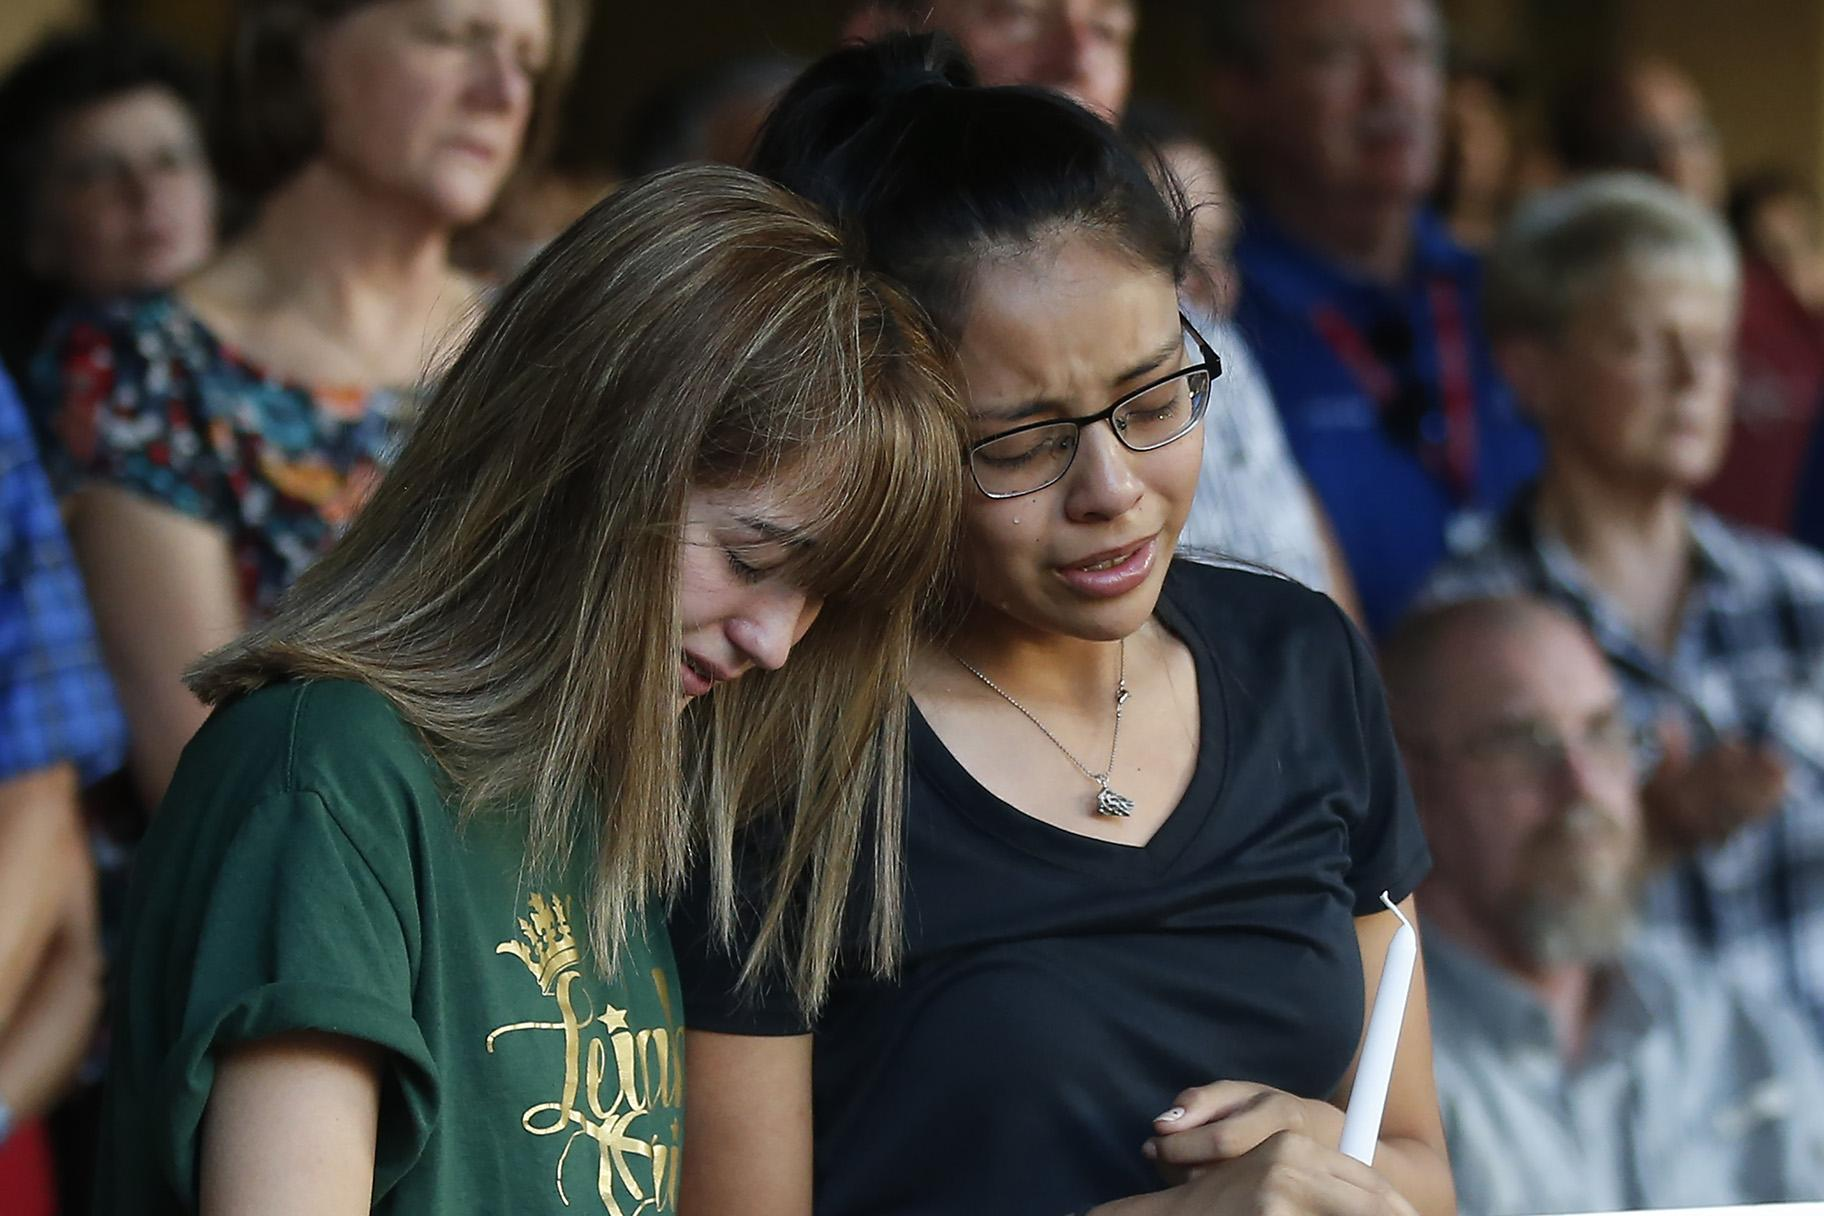 High school students Celeste Lujan, left, and Yasmin Natera mourn their friend Leilah Hernandez, one of the victims of the Saturday shooting in Odessa, at a memorial service Sunday, Sept. 1, 2019, in Odessa, Texas. (AP Photo / Sue Ogrocki)